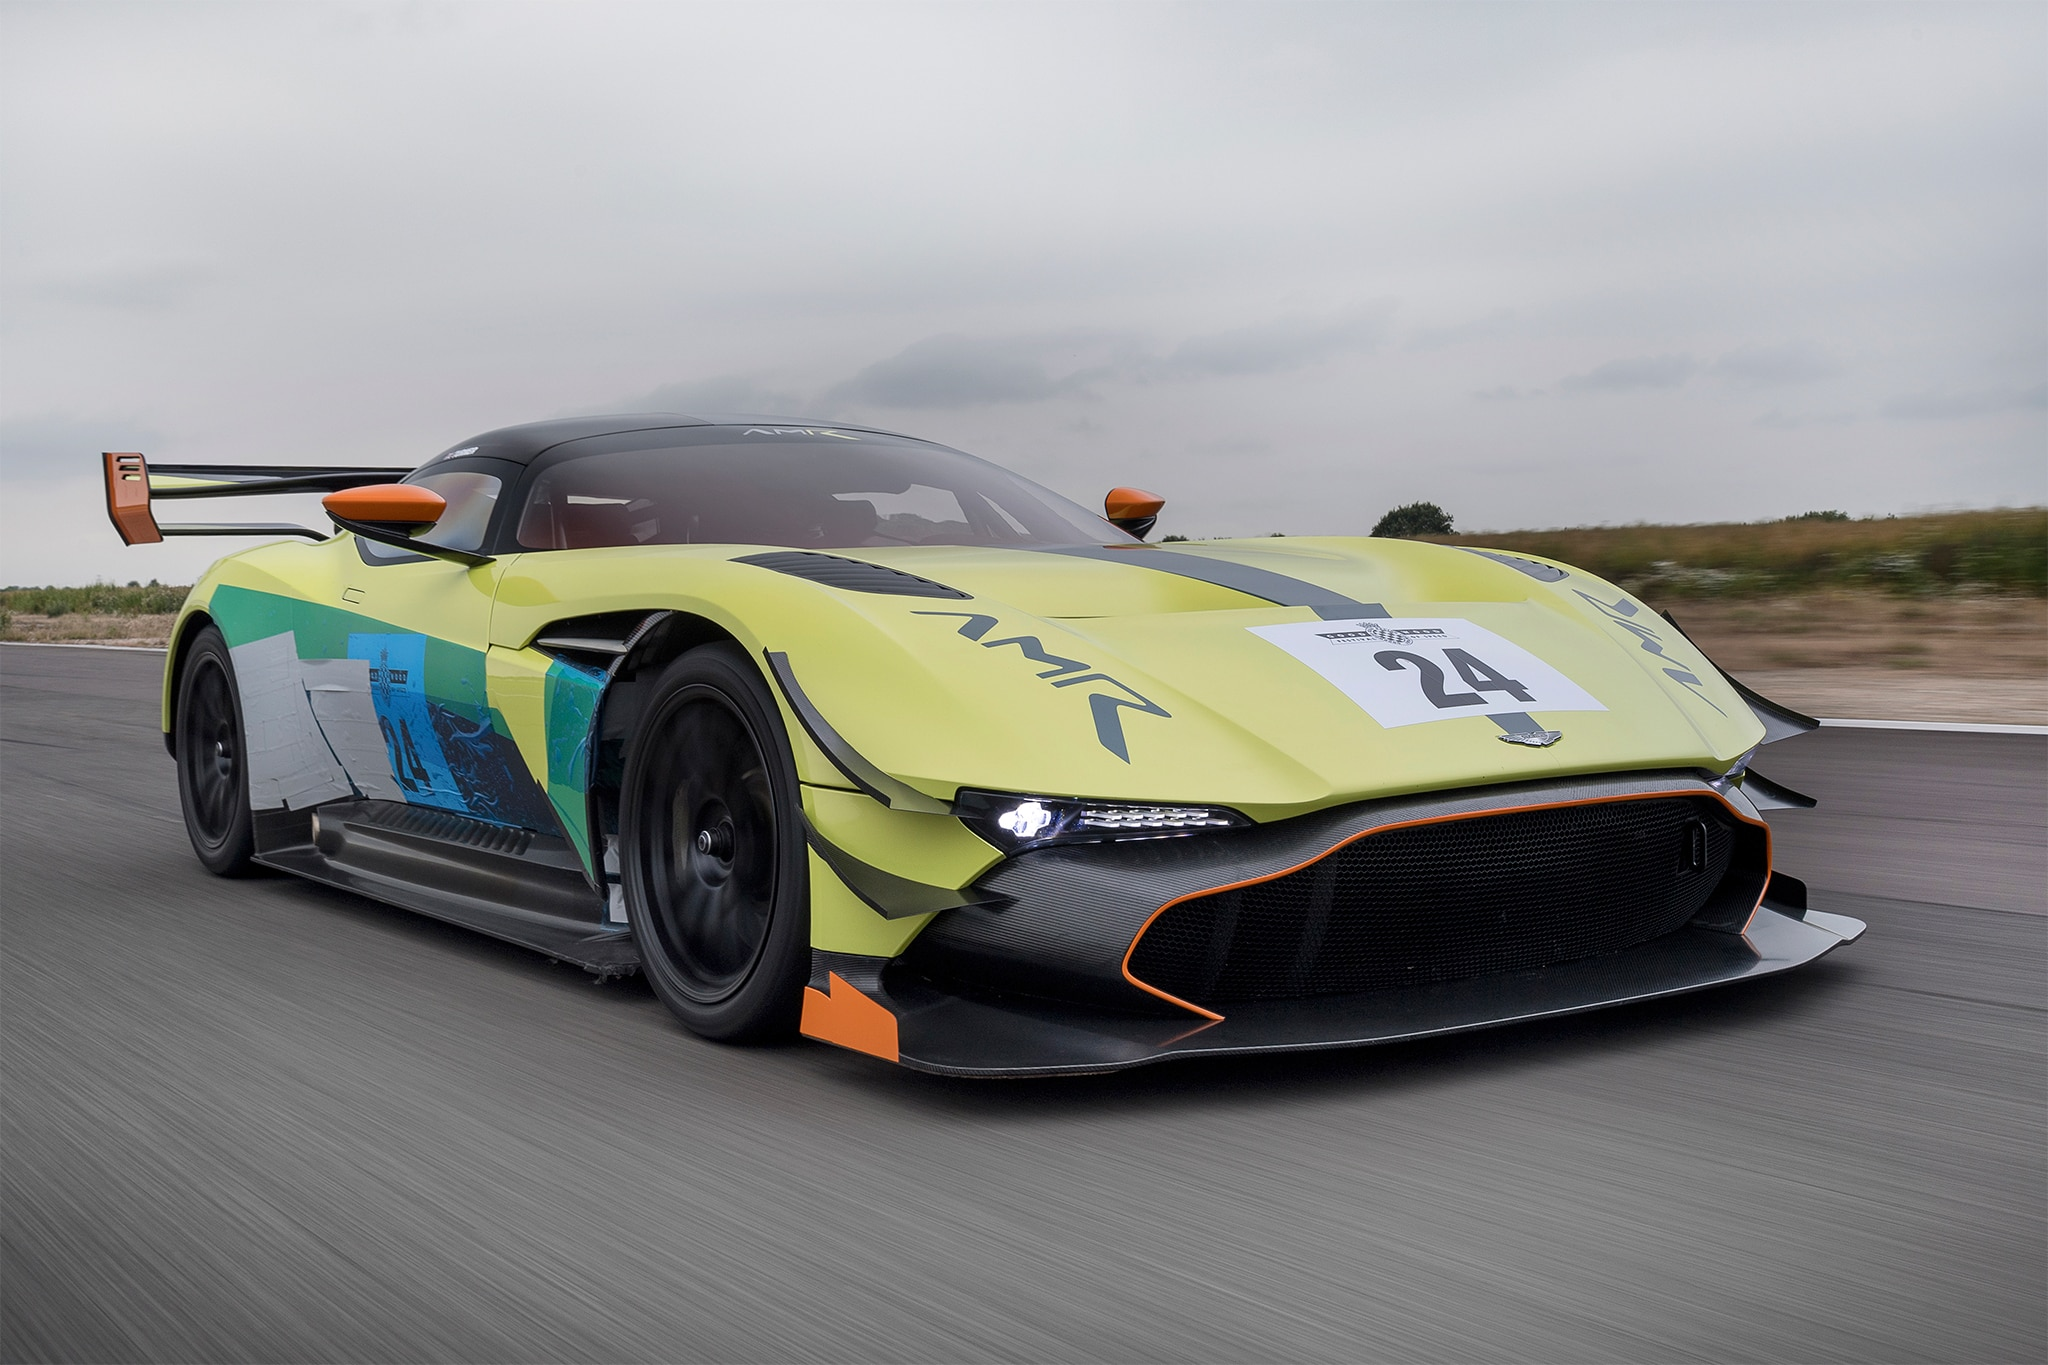 Aston Martin Vulcan receives upgraded aero from AMR